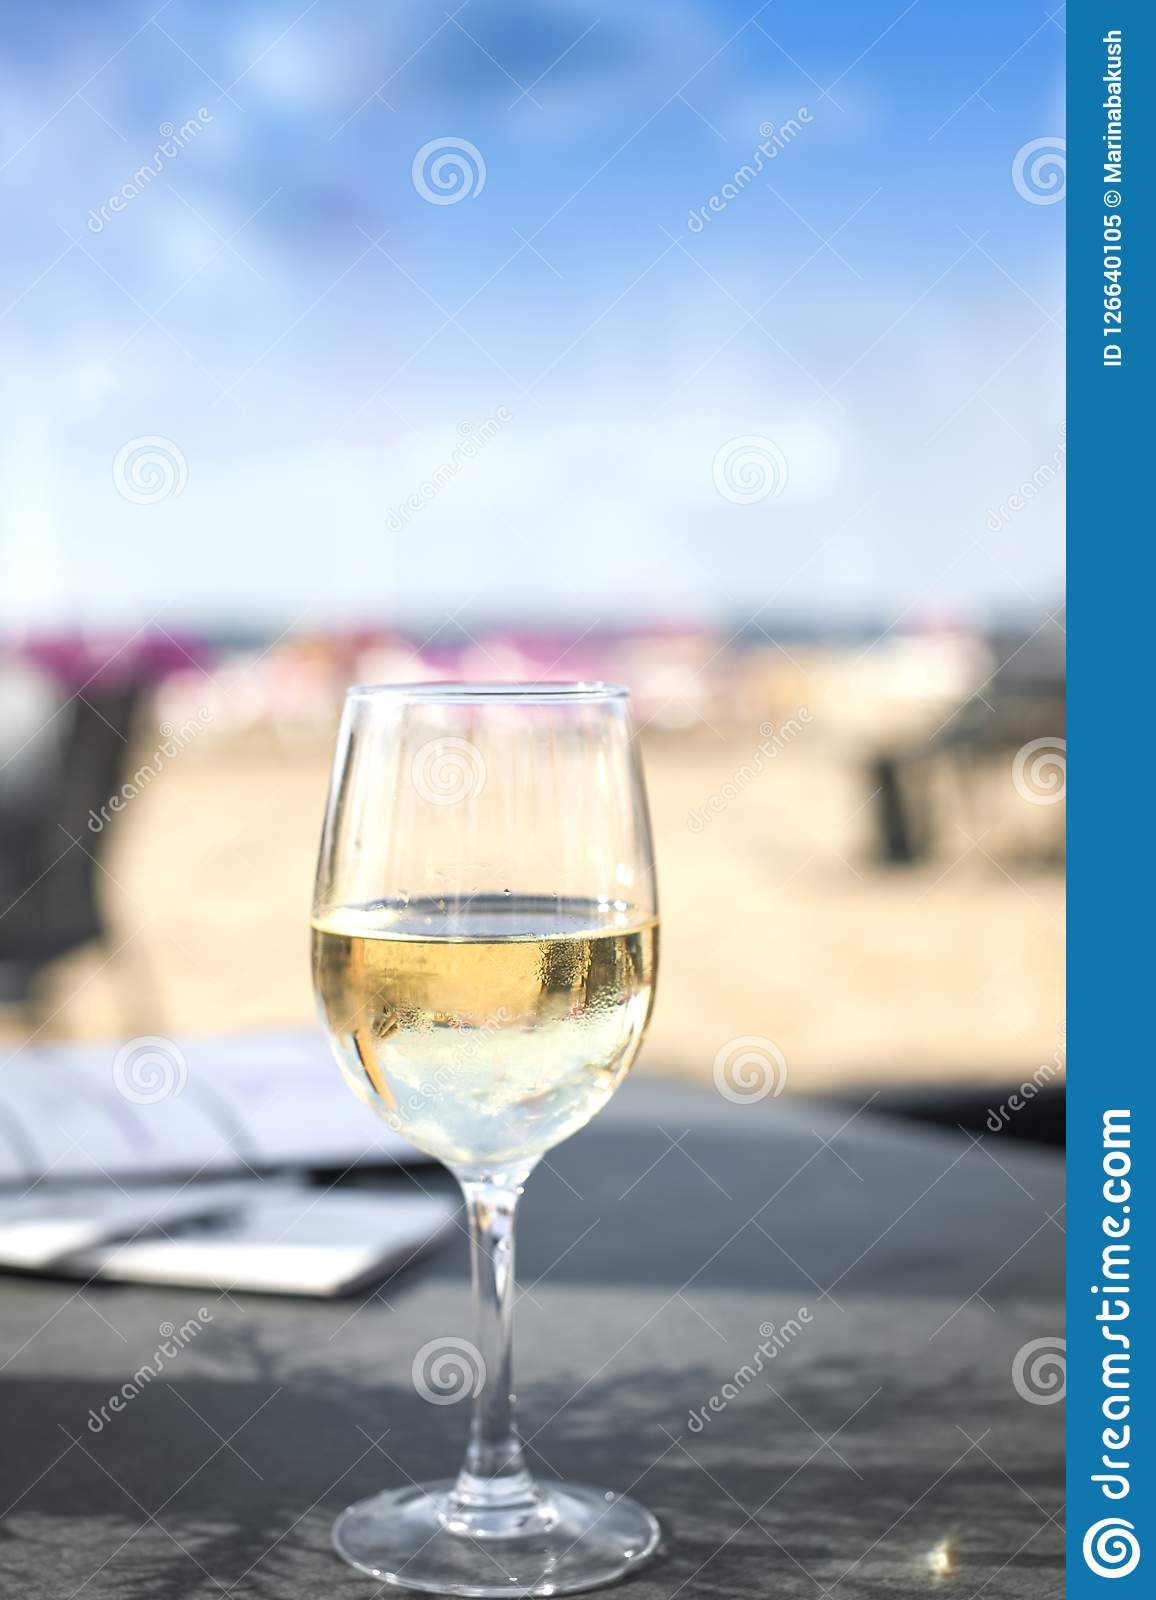 A glass of wine in a cafe on the beach. Romance and the sea.